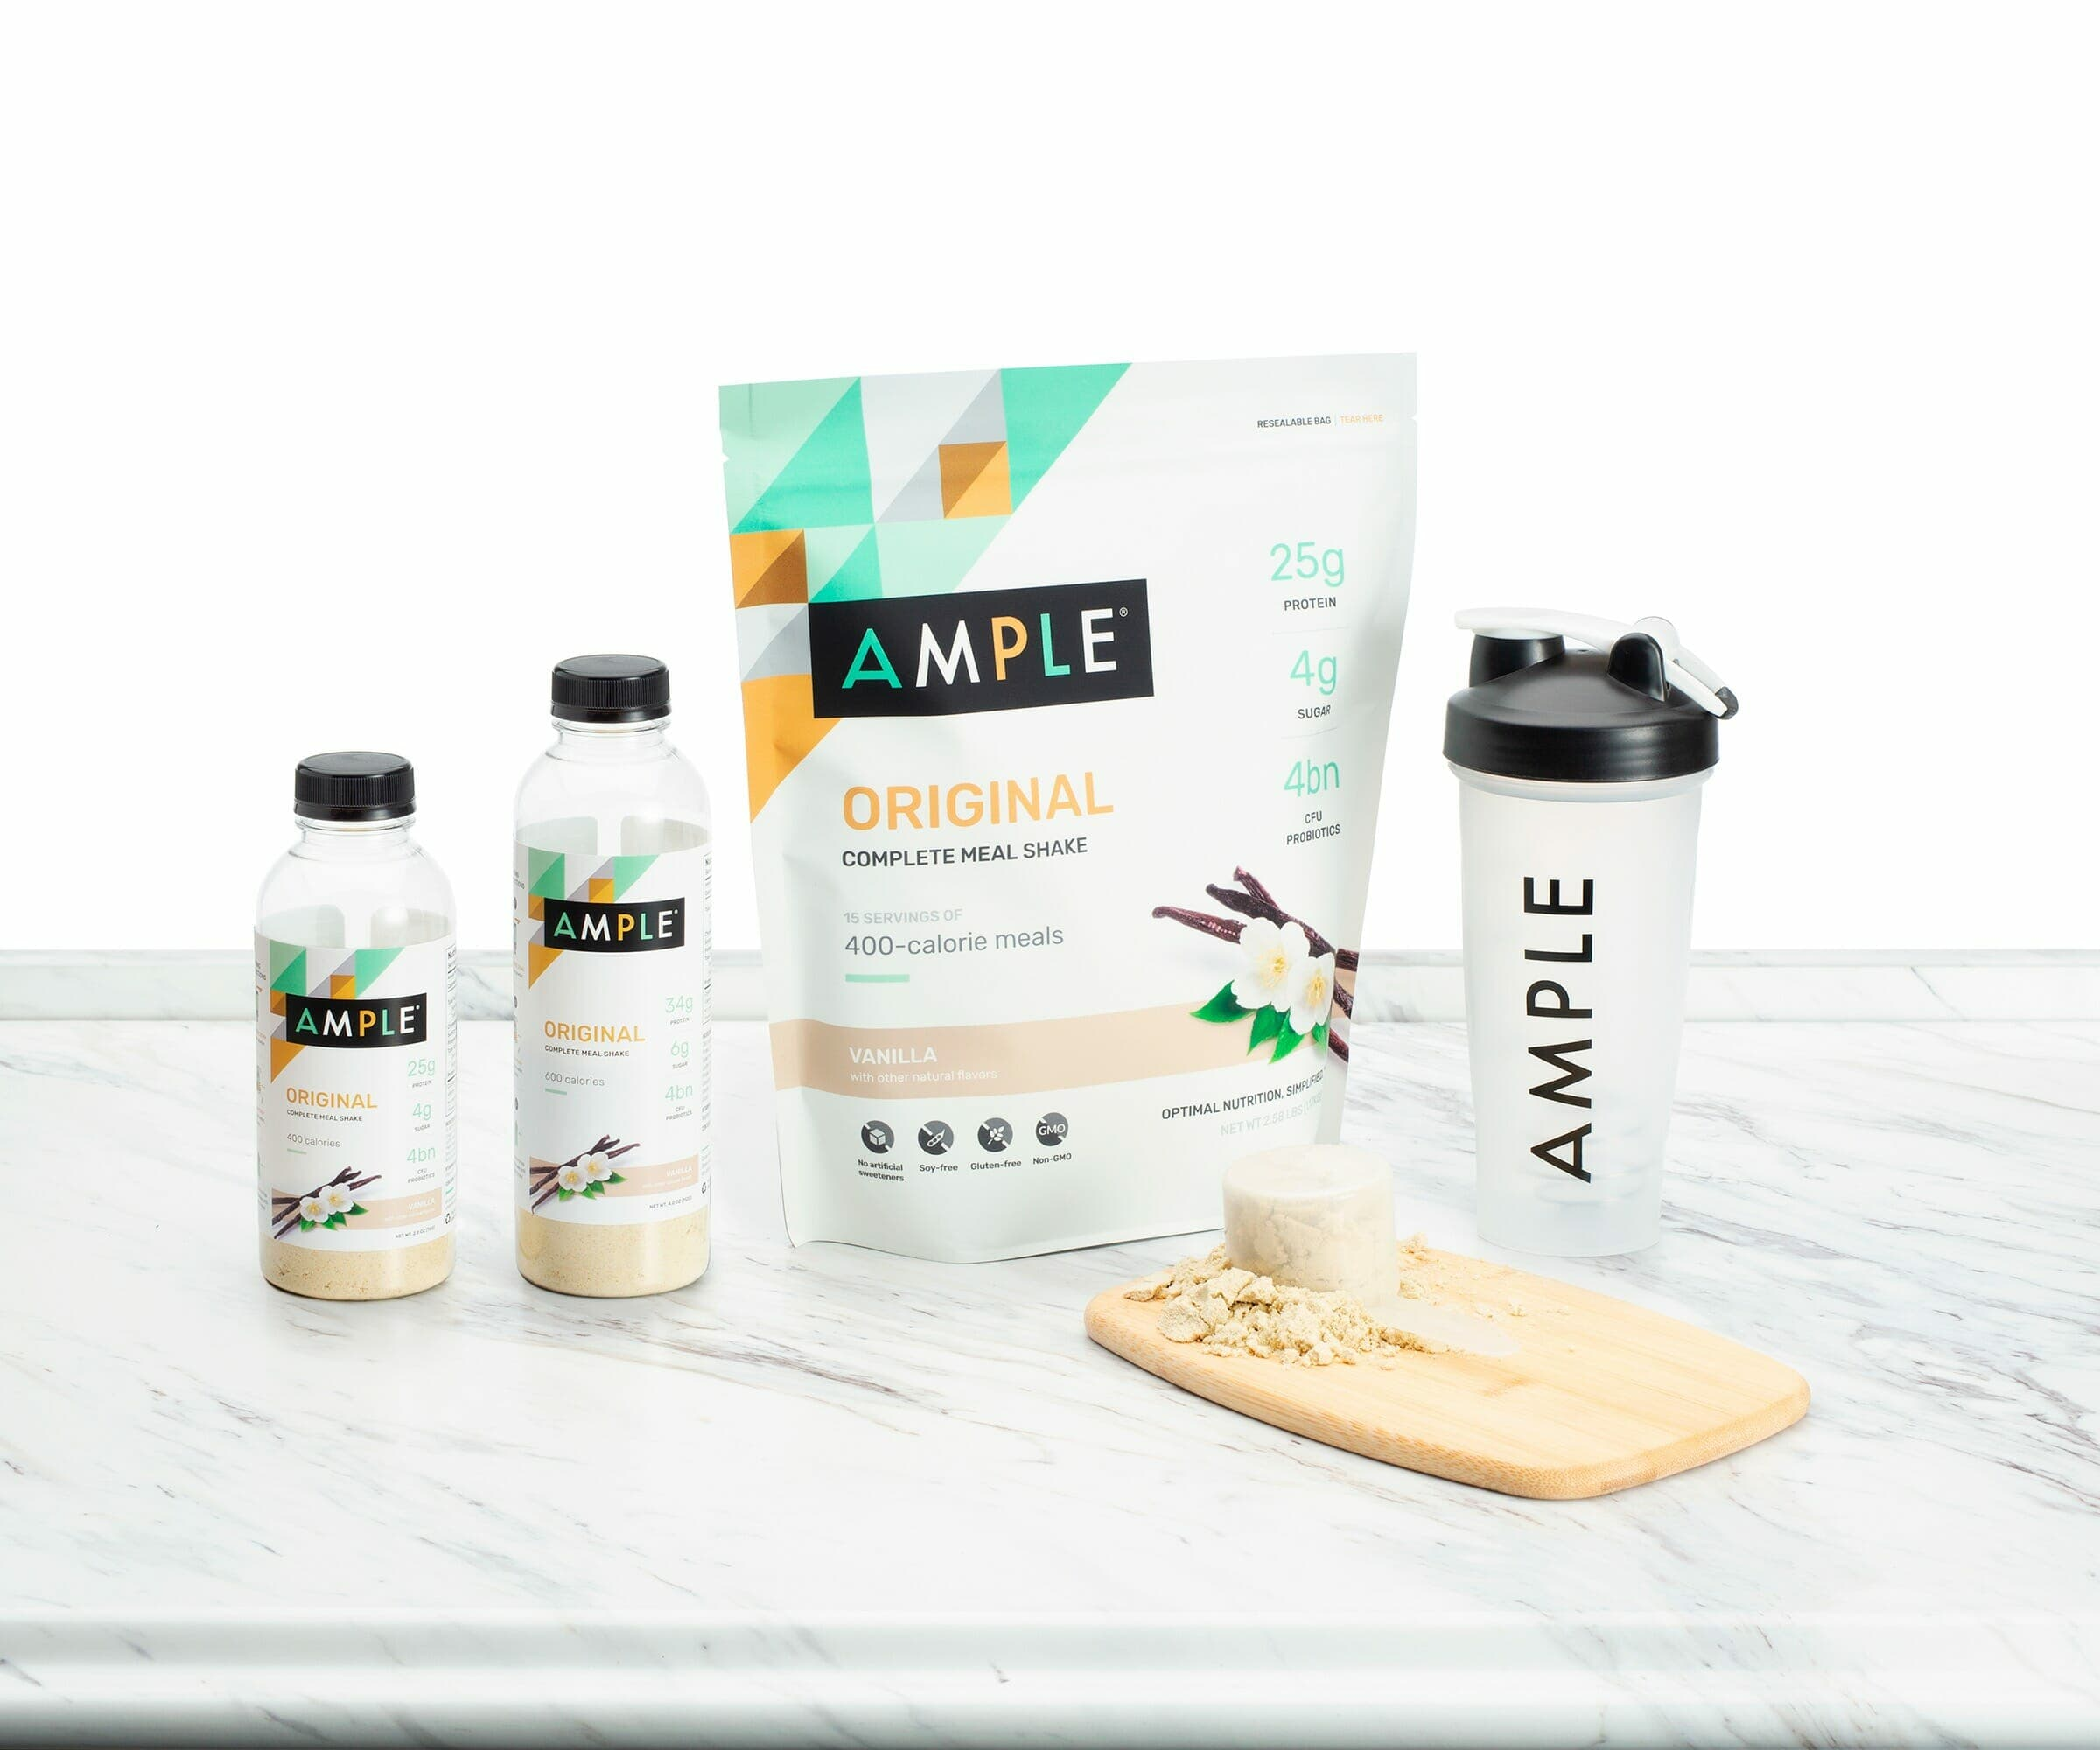 Ample Meal Review